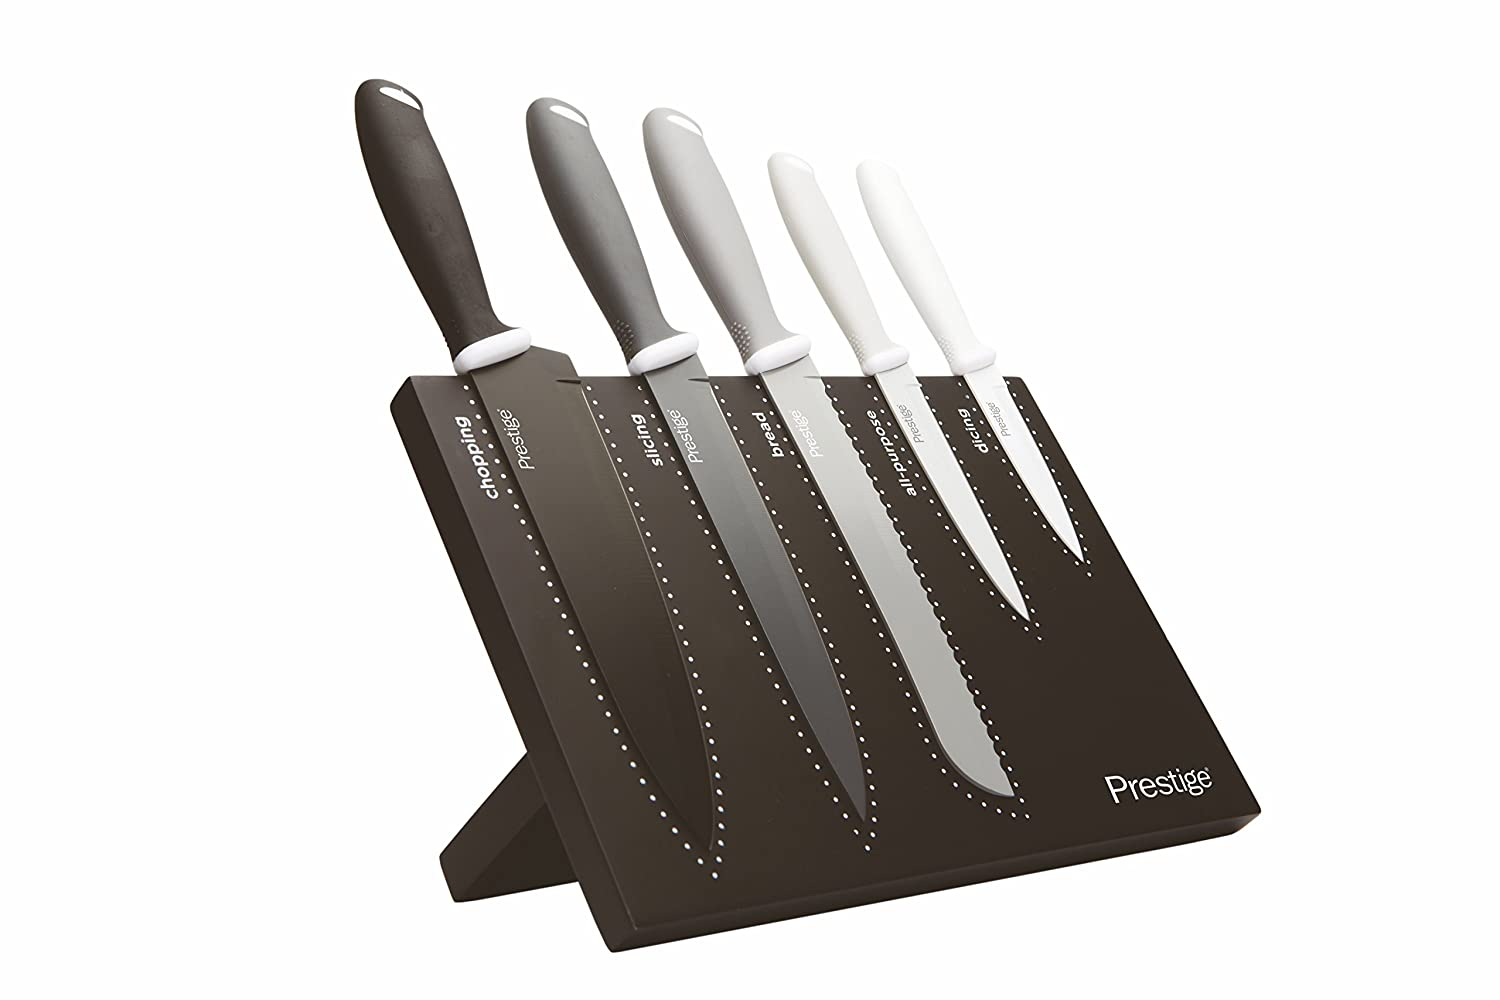 Prestige Stainless Steel 6 Piece Magnetic Knife Block Set - Black/White, Set of 6 Meyer Group Ltd 46423